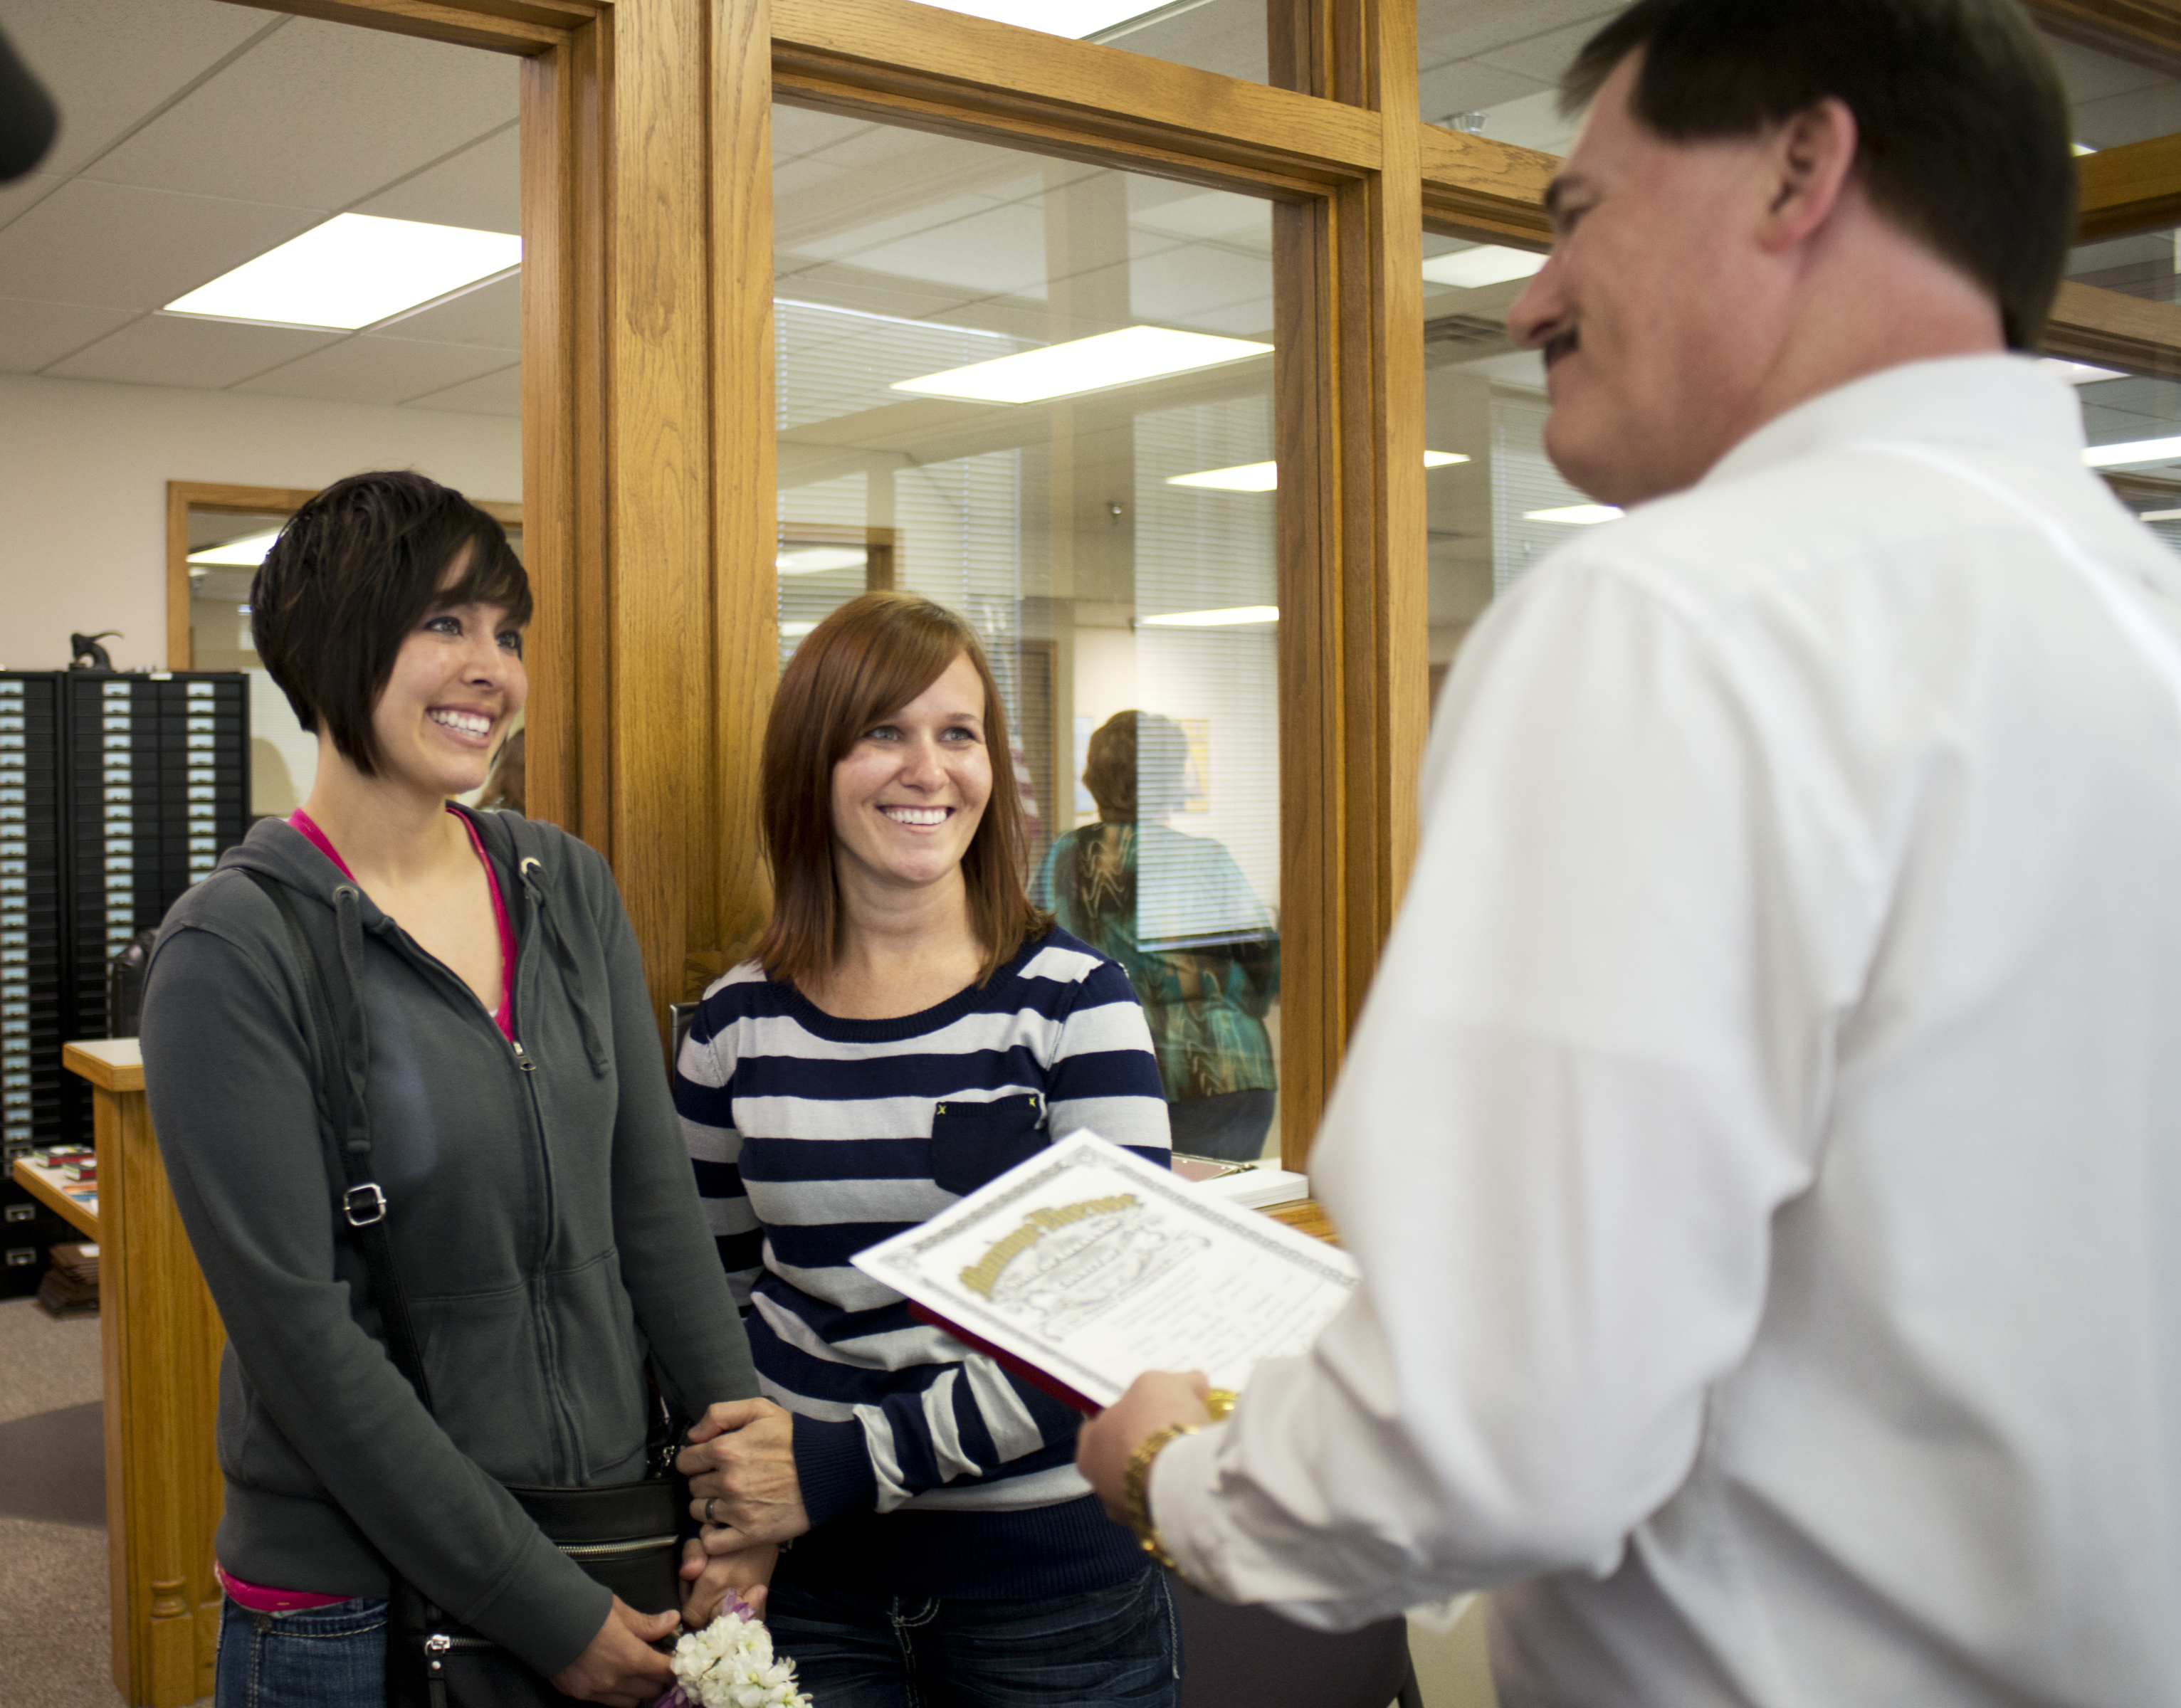 Beth Moore, left, and her partner Abby Hill, center, exchange vows in a marriage ceremony performed by Jeremy Hernandez, right, at the Washington County Courthouse in Fayetteville, Ark., Friday May 16, 2014.